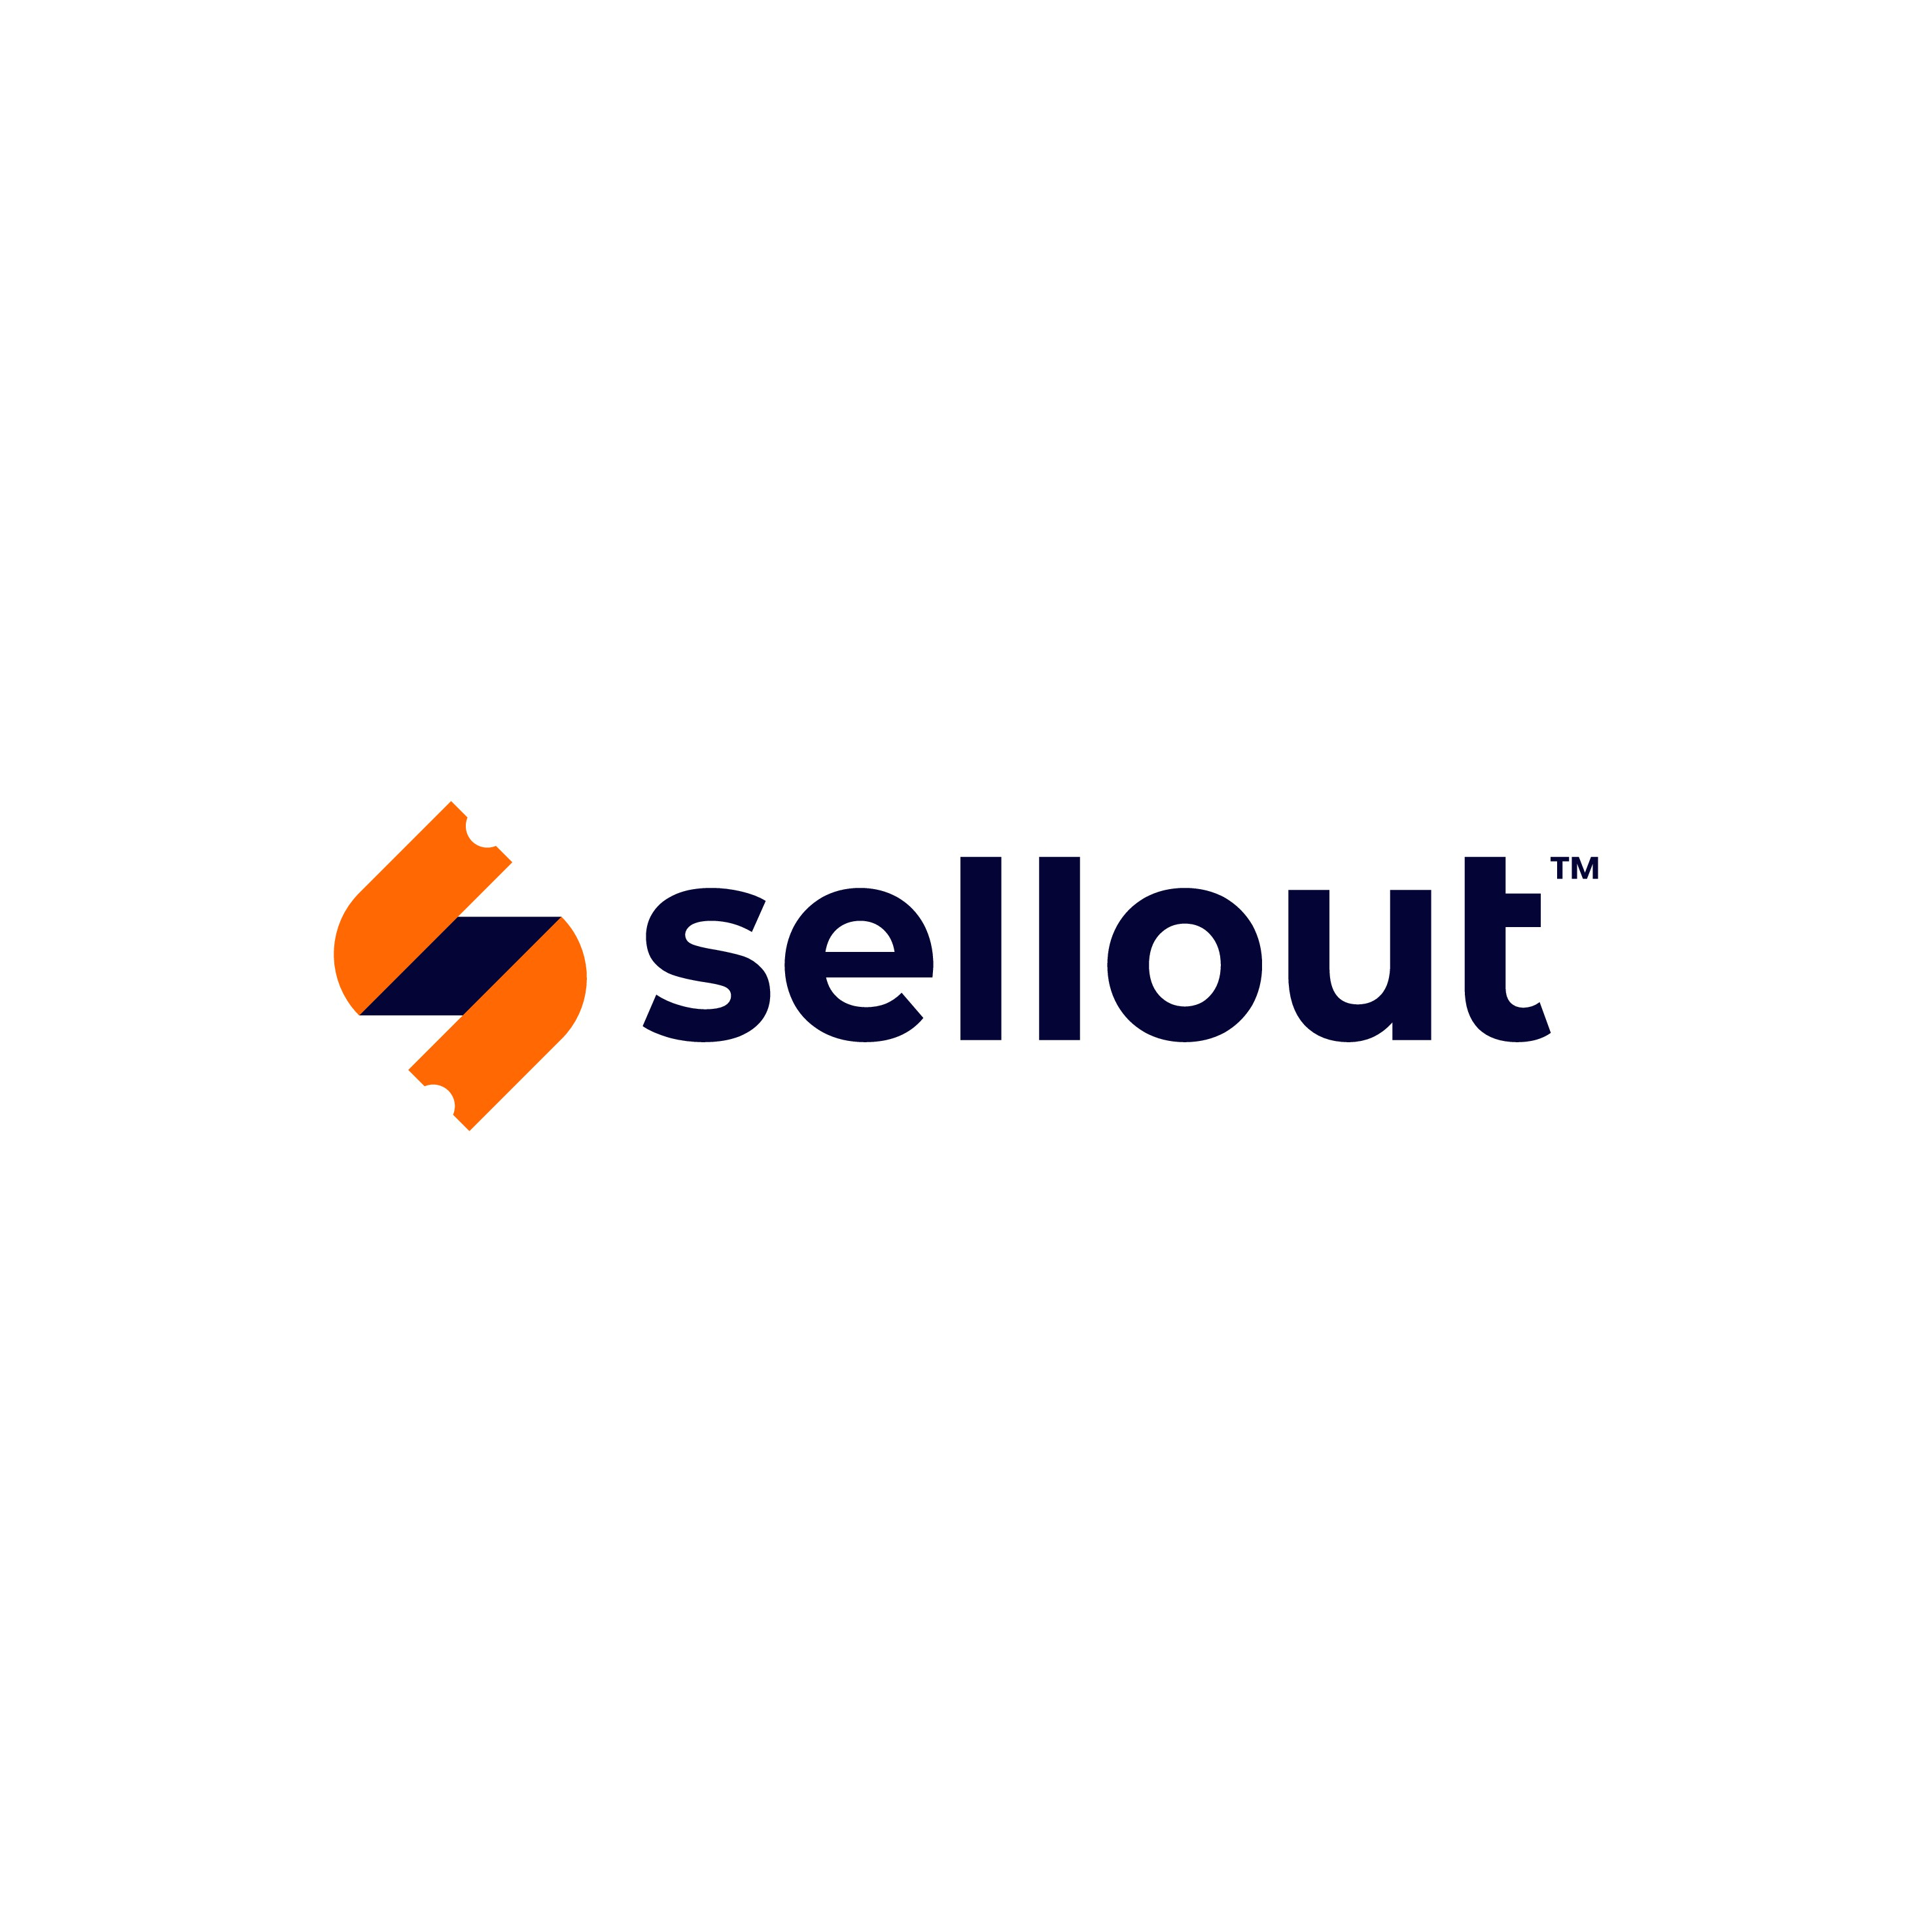 Sellout - Tech startup hellbent on innovating the concert ticketing industry seeks stylish, modern branding.